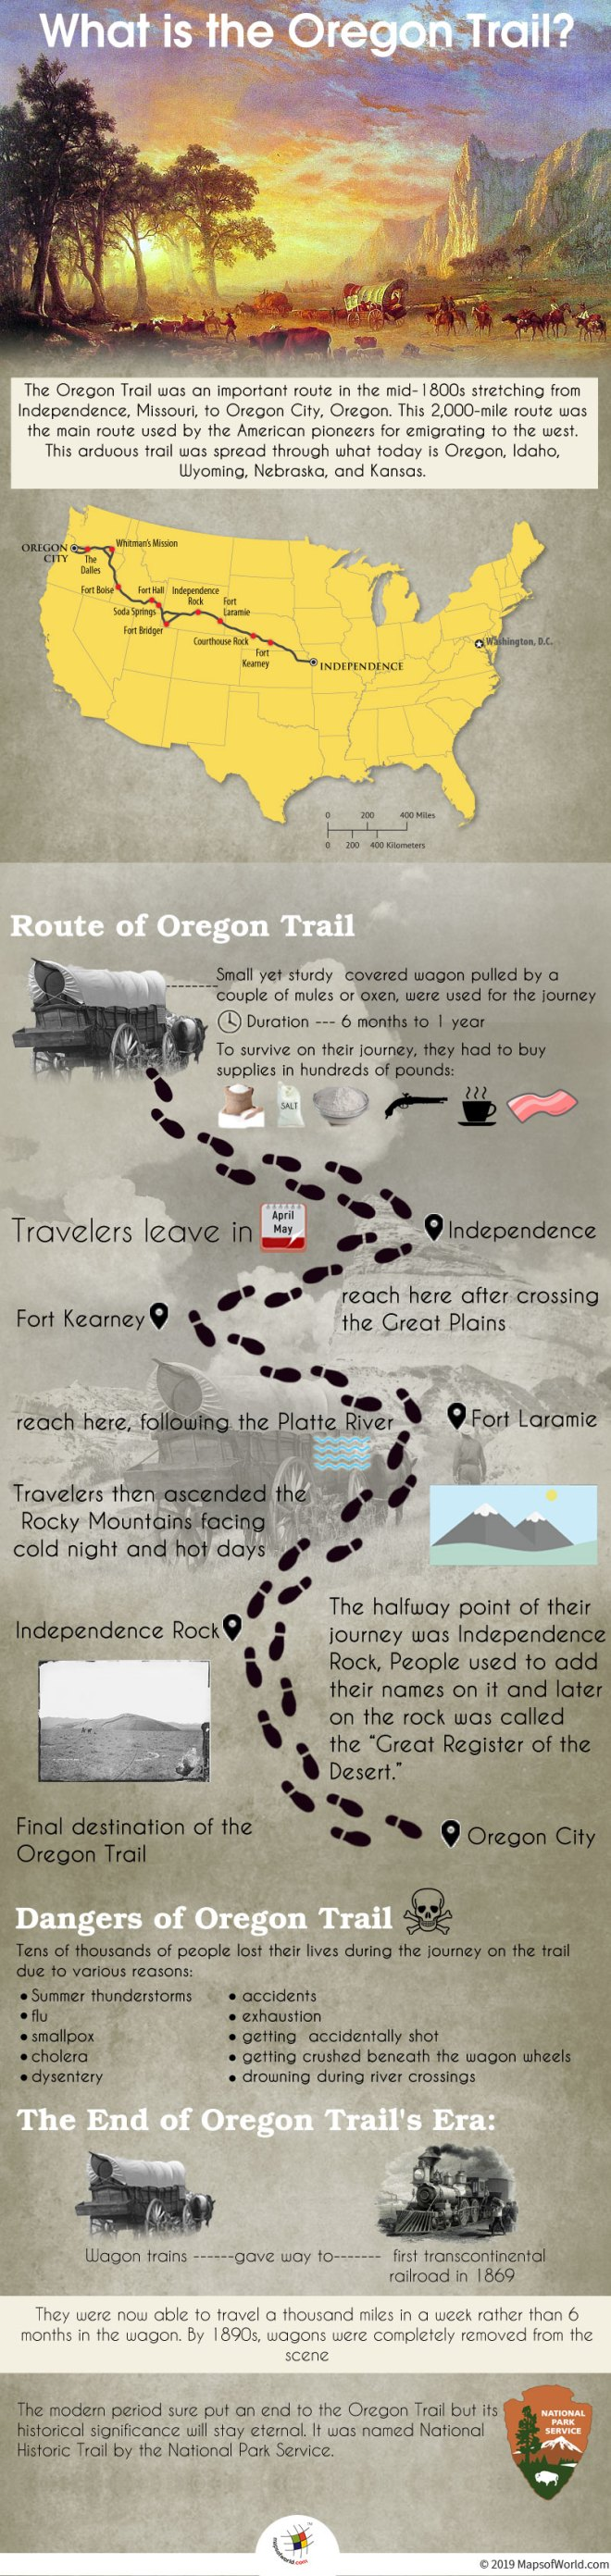 Infographic Giving Details About The Oregon Trail